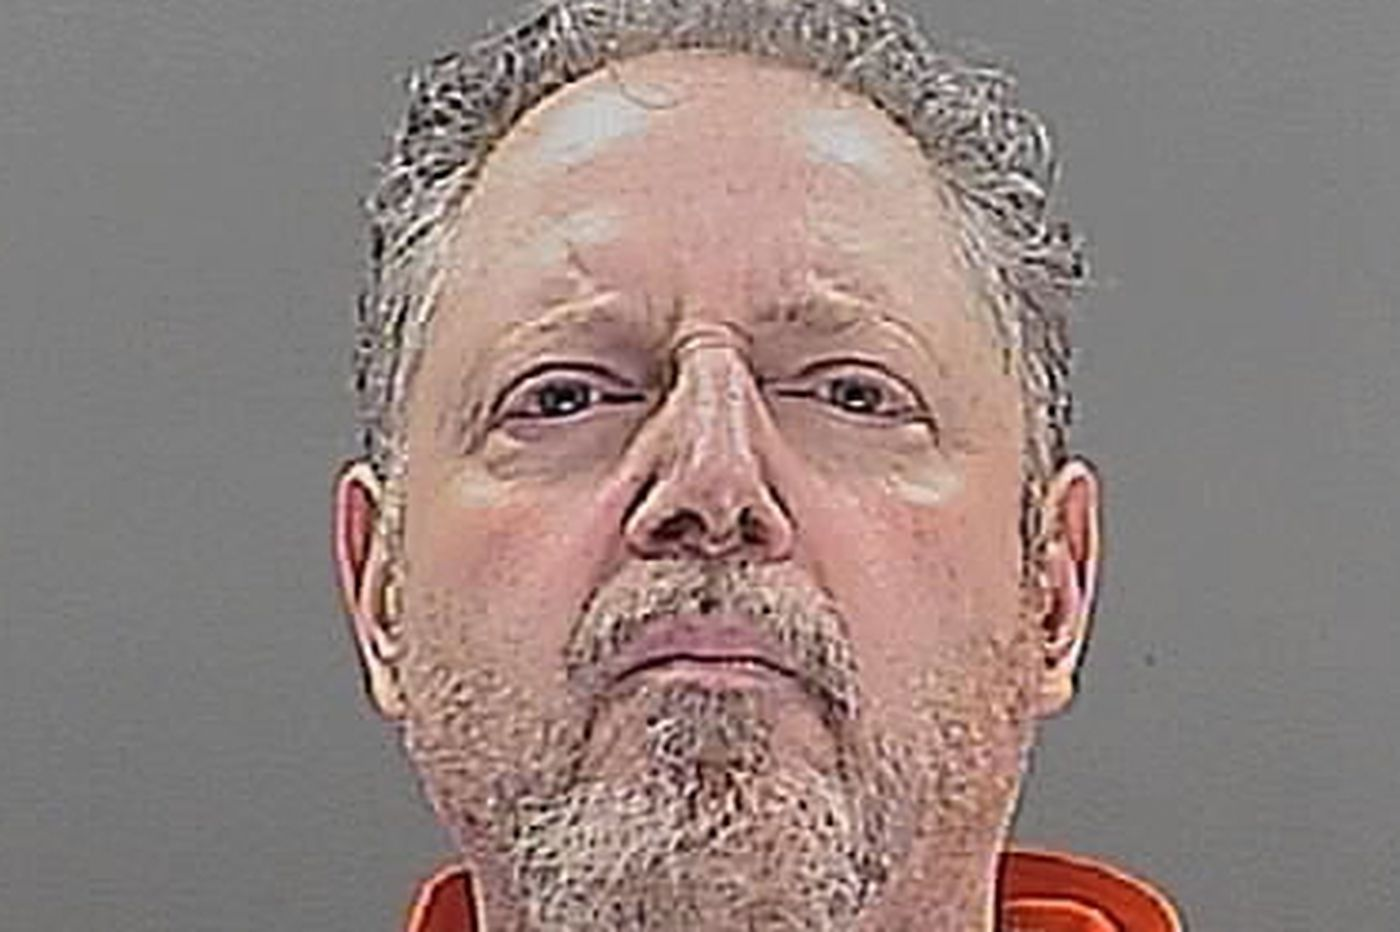 Burlington County man pleads guilty to killing wife with a hammer